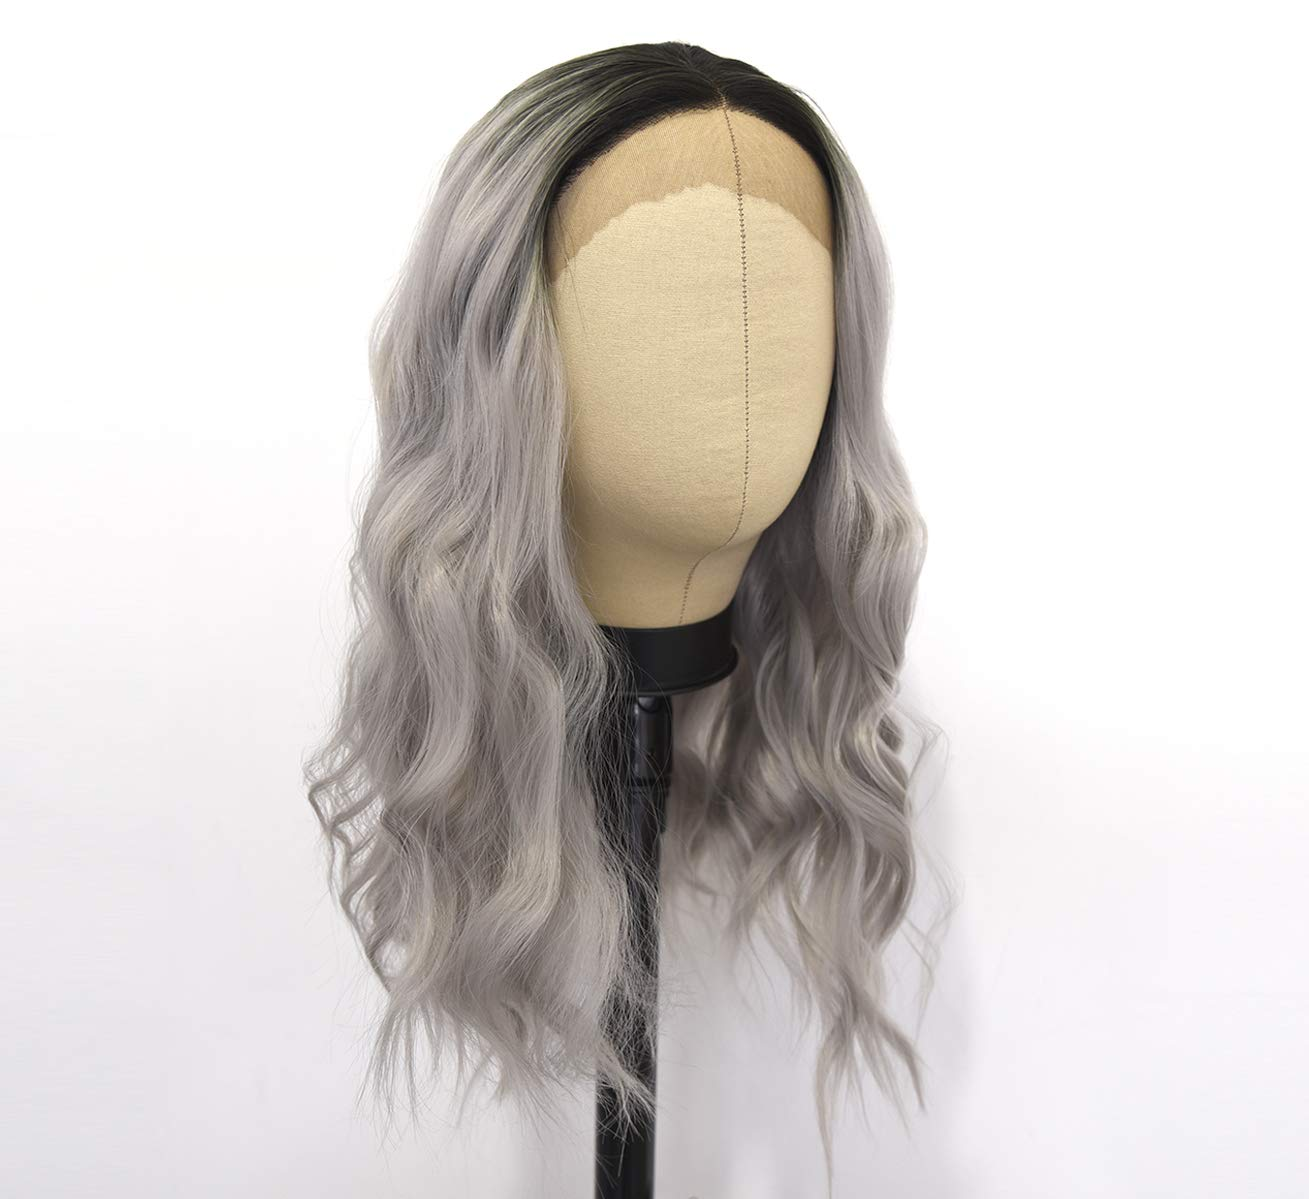 LANOVA Ombre Grey Wigs with Black Fro Lace SALENEW大人気! Curly Synthetic タイムセール Roots